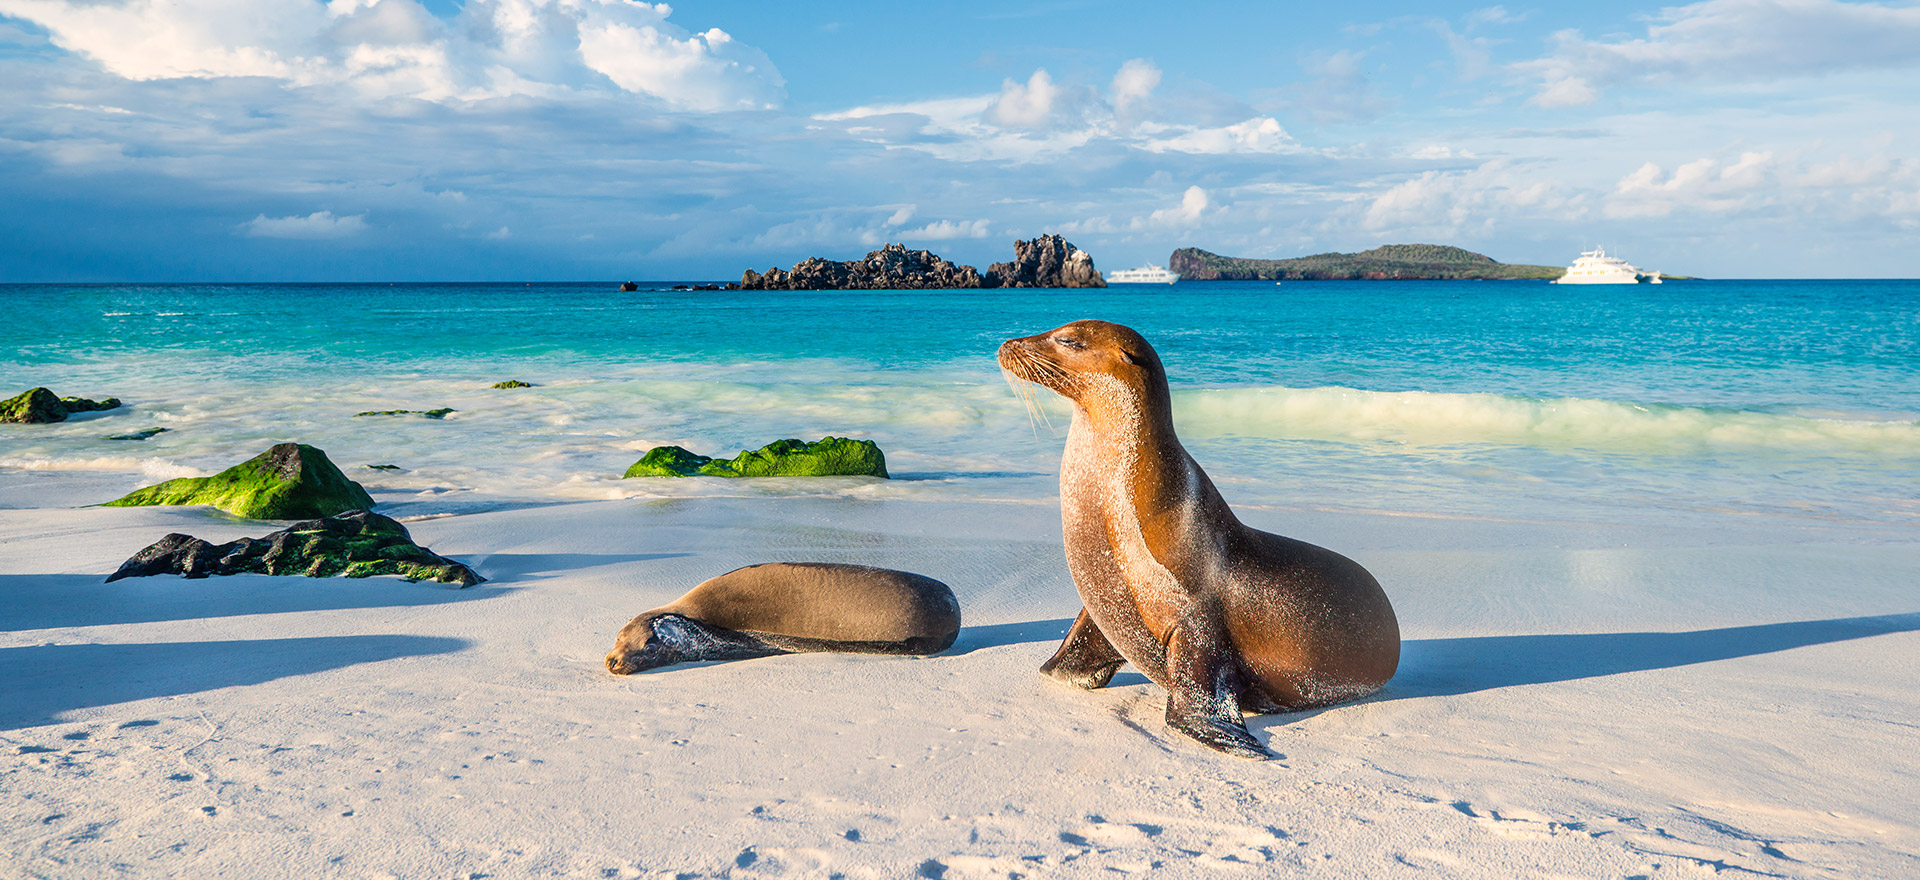 Ecuador & Galapagos - Sea lions on beach